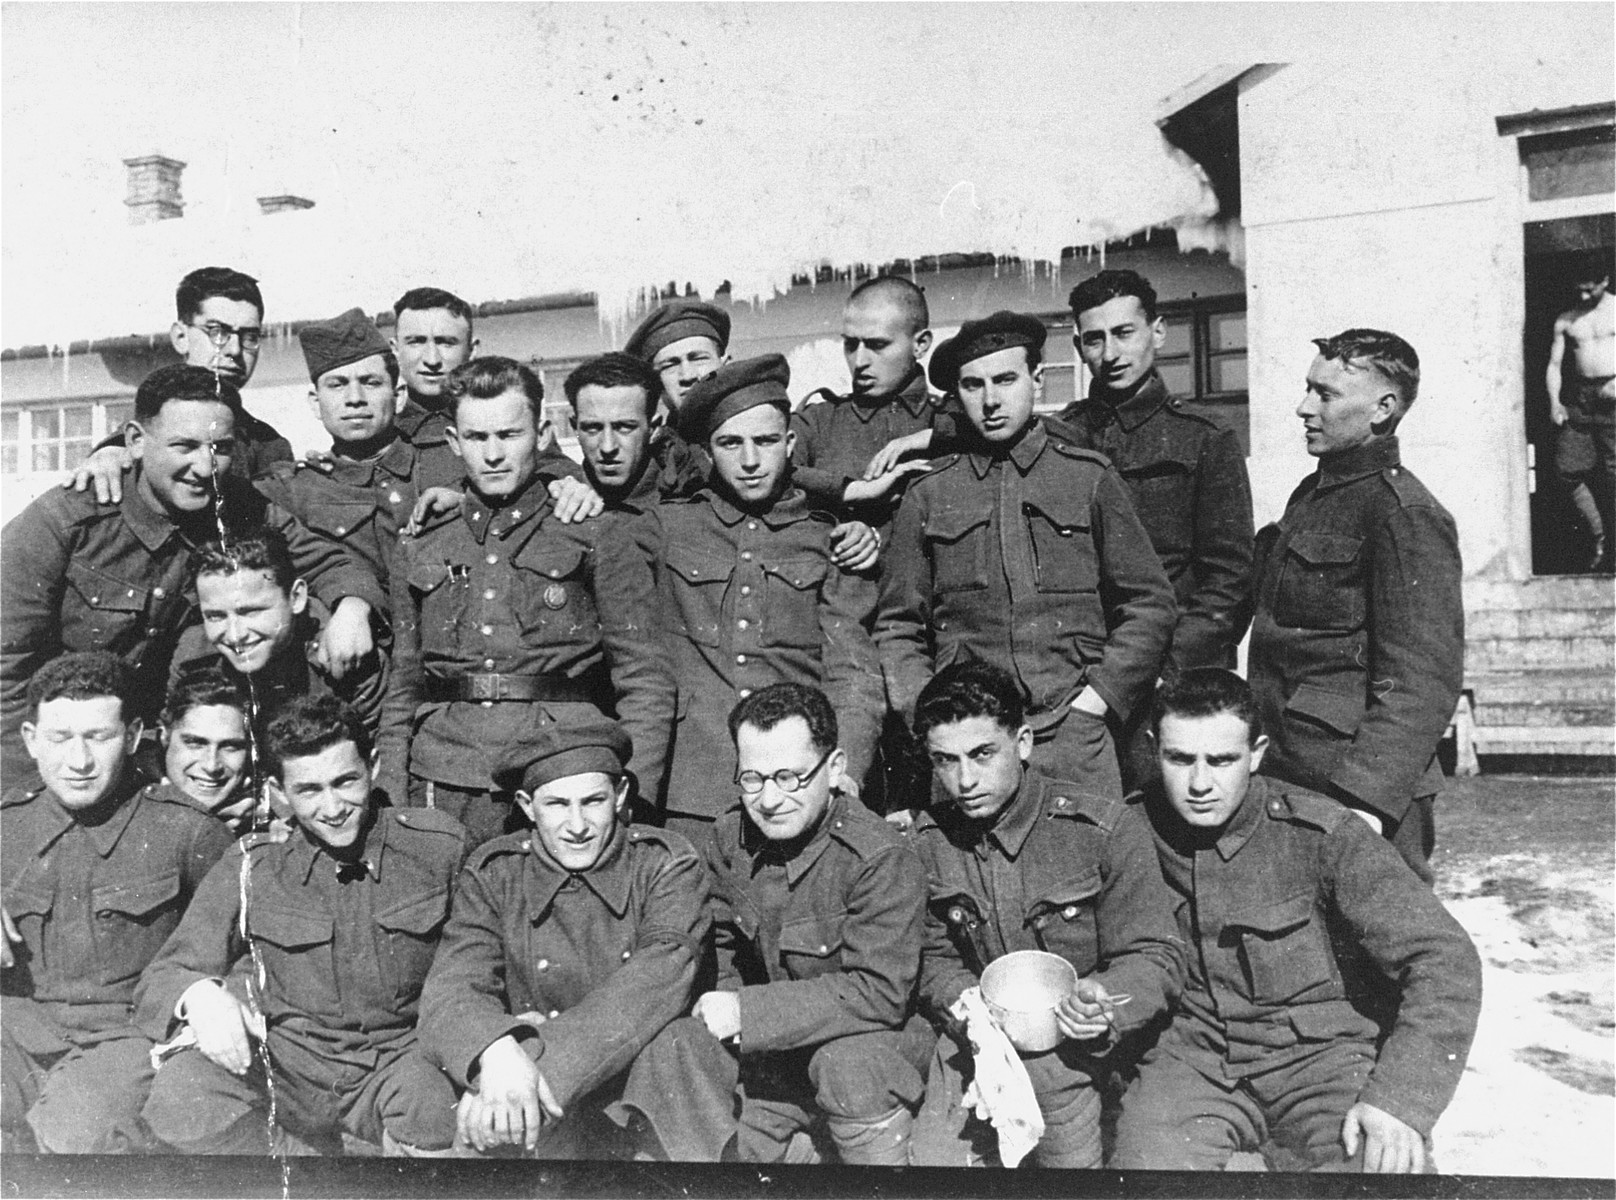 Group portrait of Jewish members of the Sixth Labor  Battalion (VI Prapor) at a Slovak labor camp.   Michael Diamond was this camp from 1939-1942.